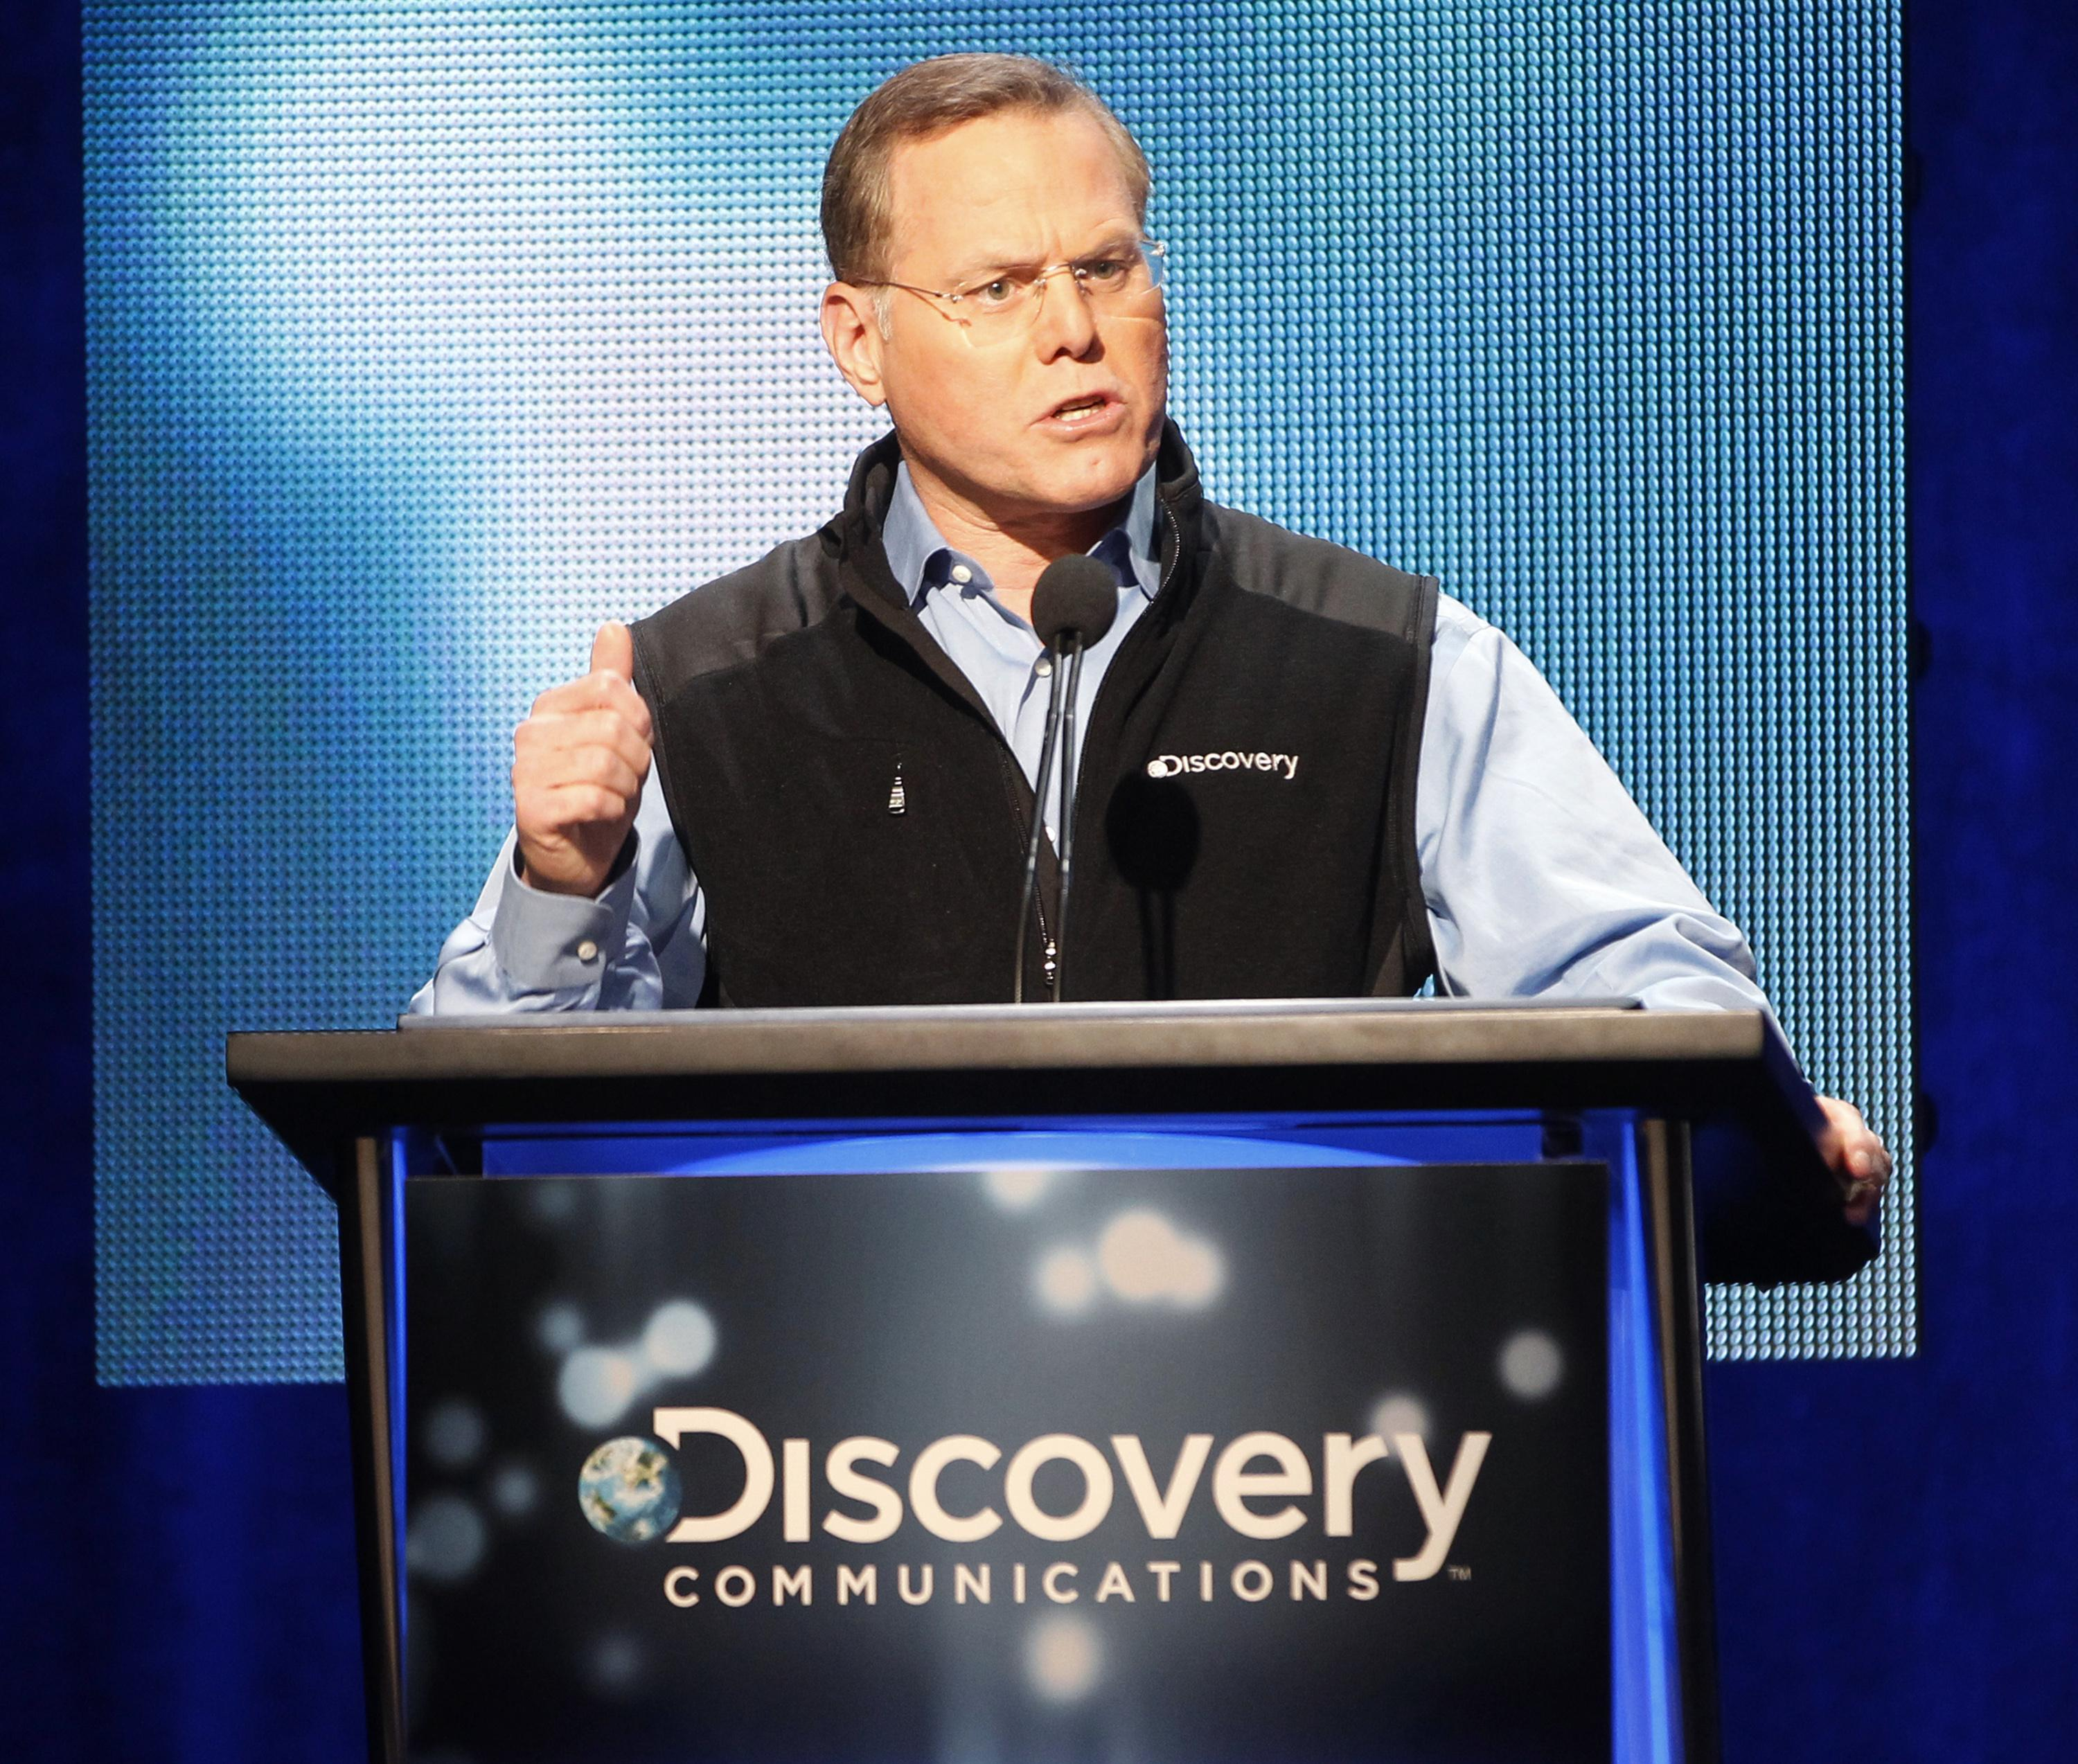 1.	Discovery Communications